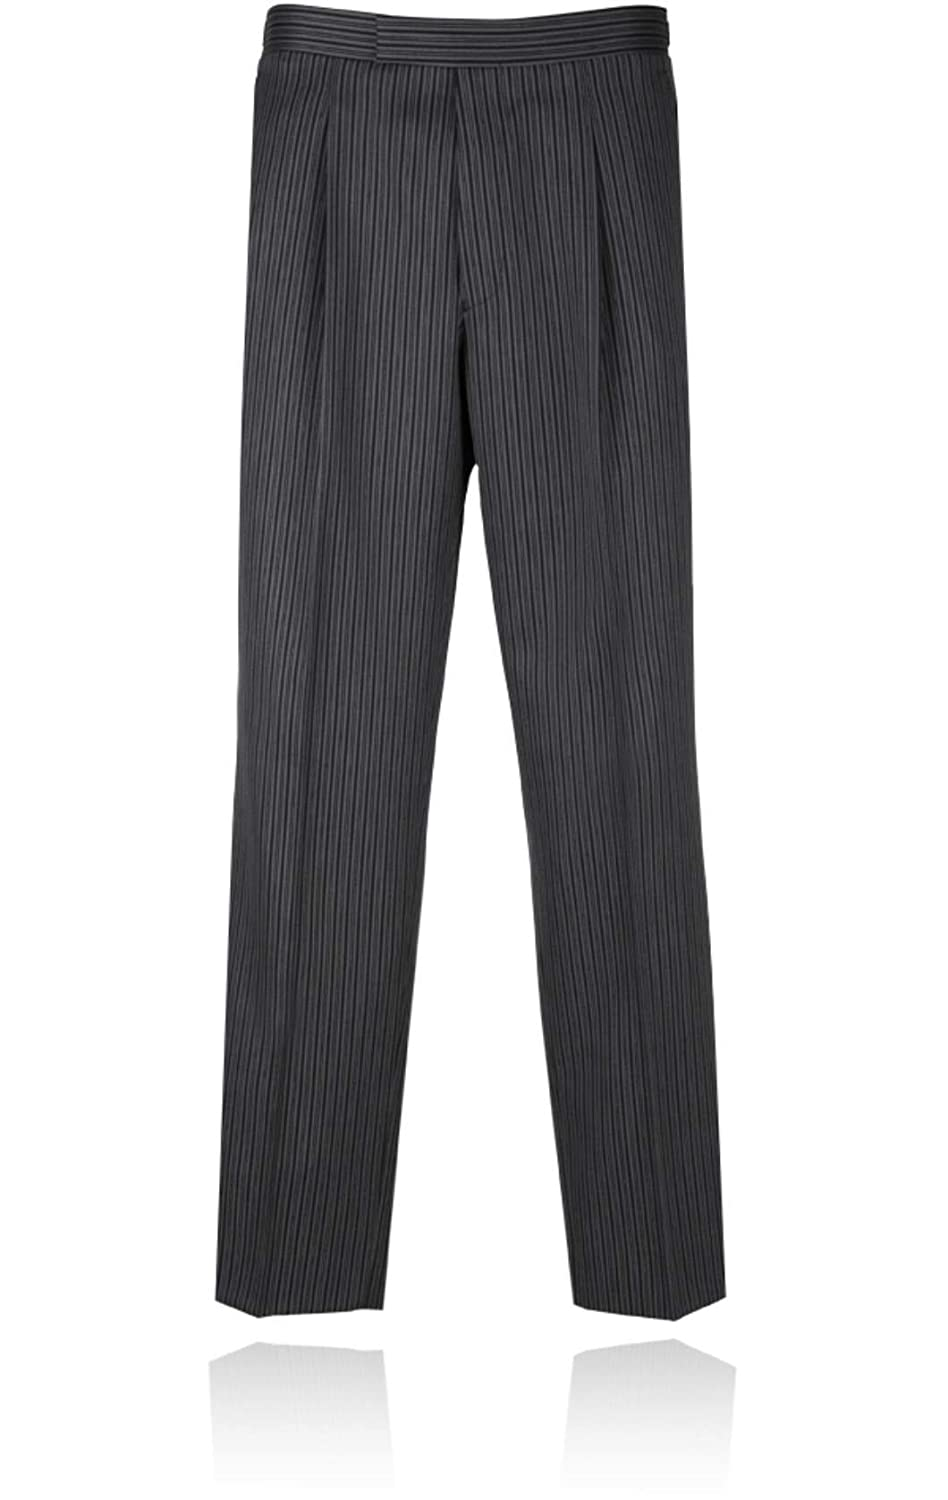 1920s Style Men's Pants & Plus Four Knickers Mens Black & Grey Striped Morning Suit Trousers £50.00 AT vintagedancer.com